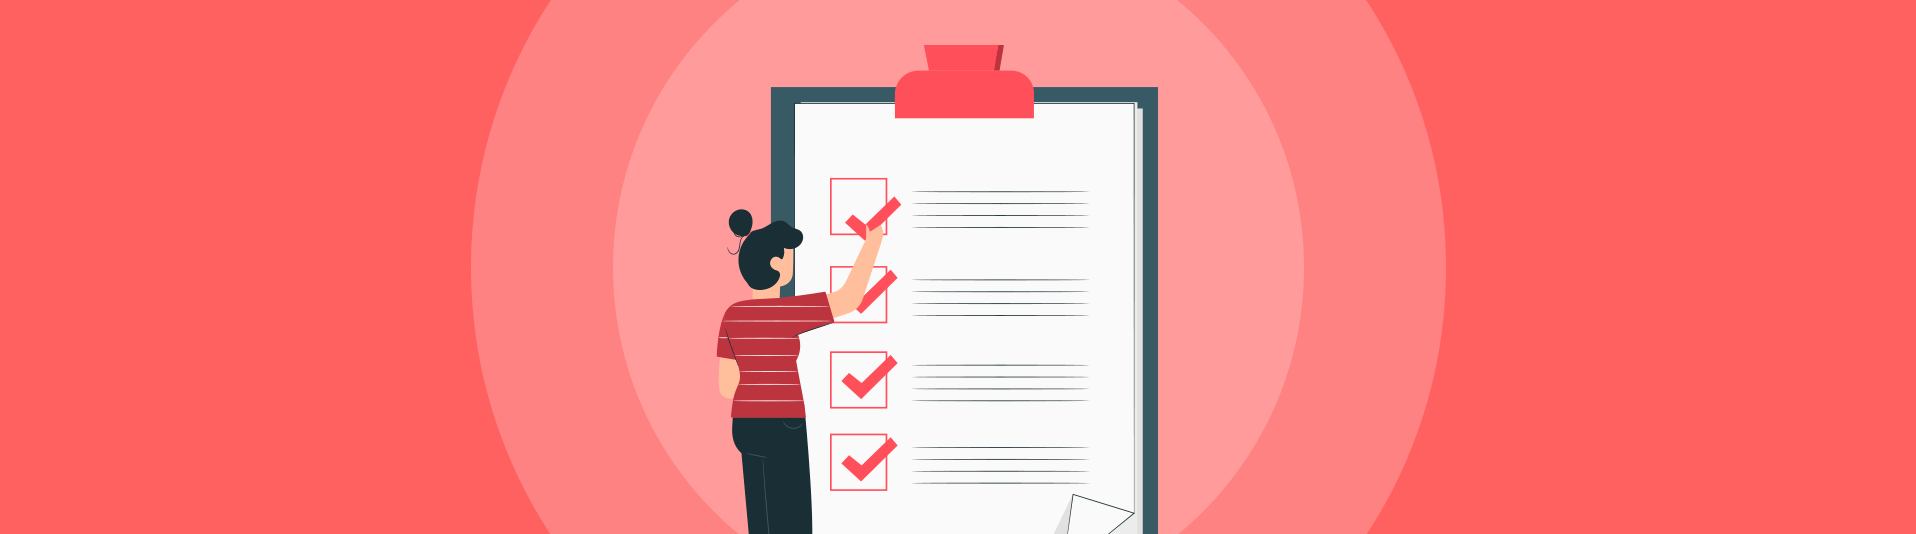 Checklist para eventos online: por que preciso de um?